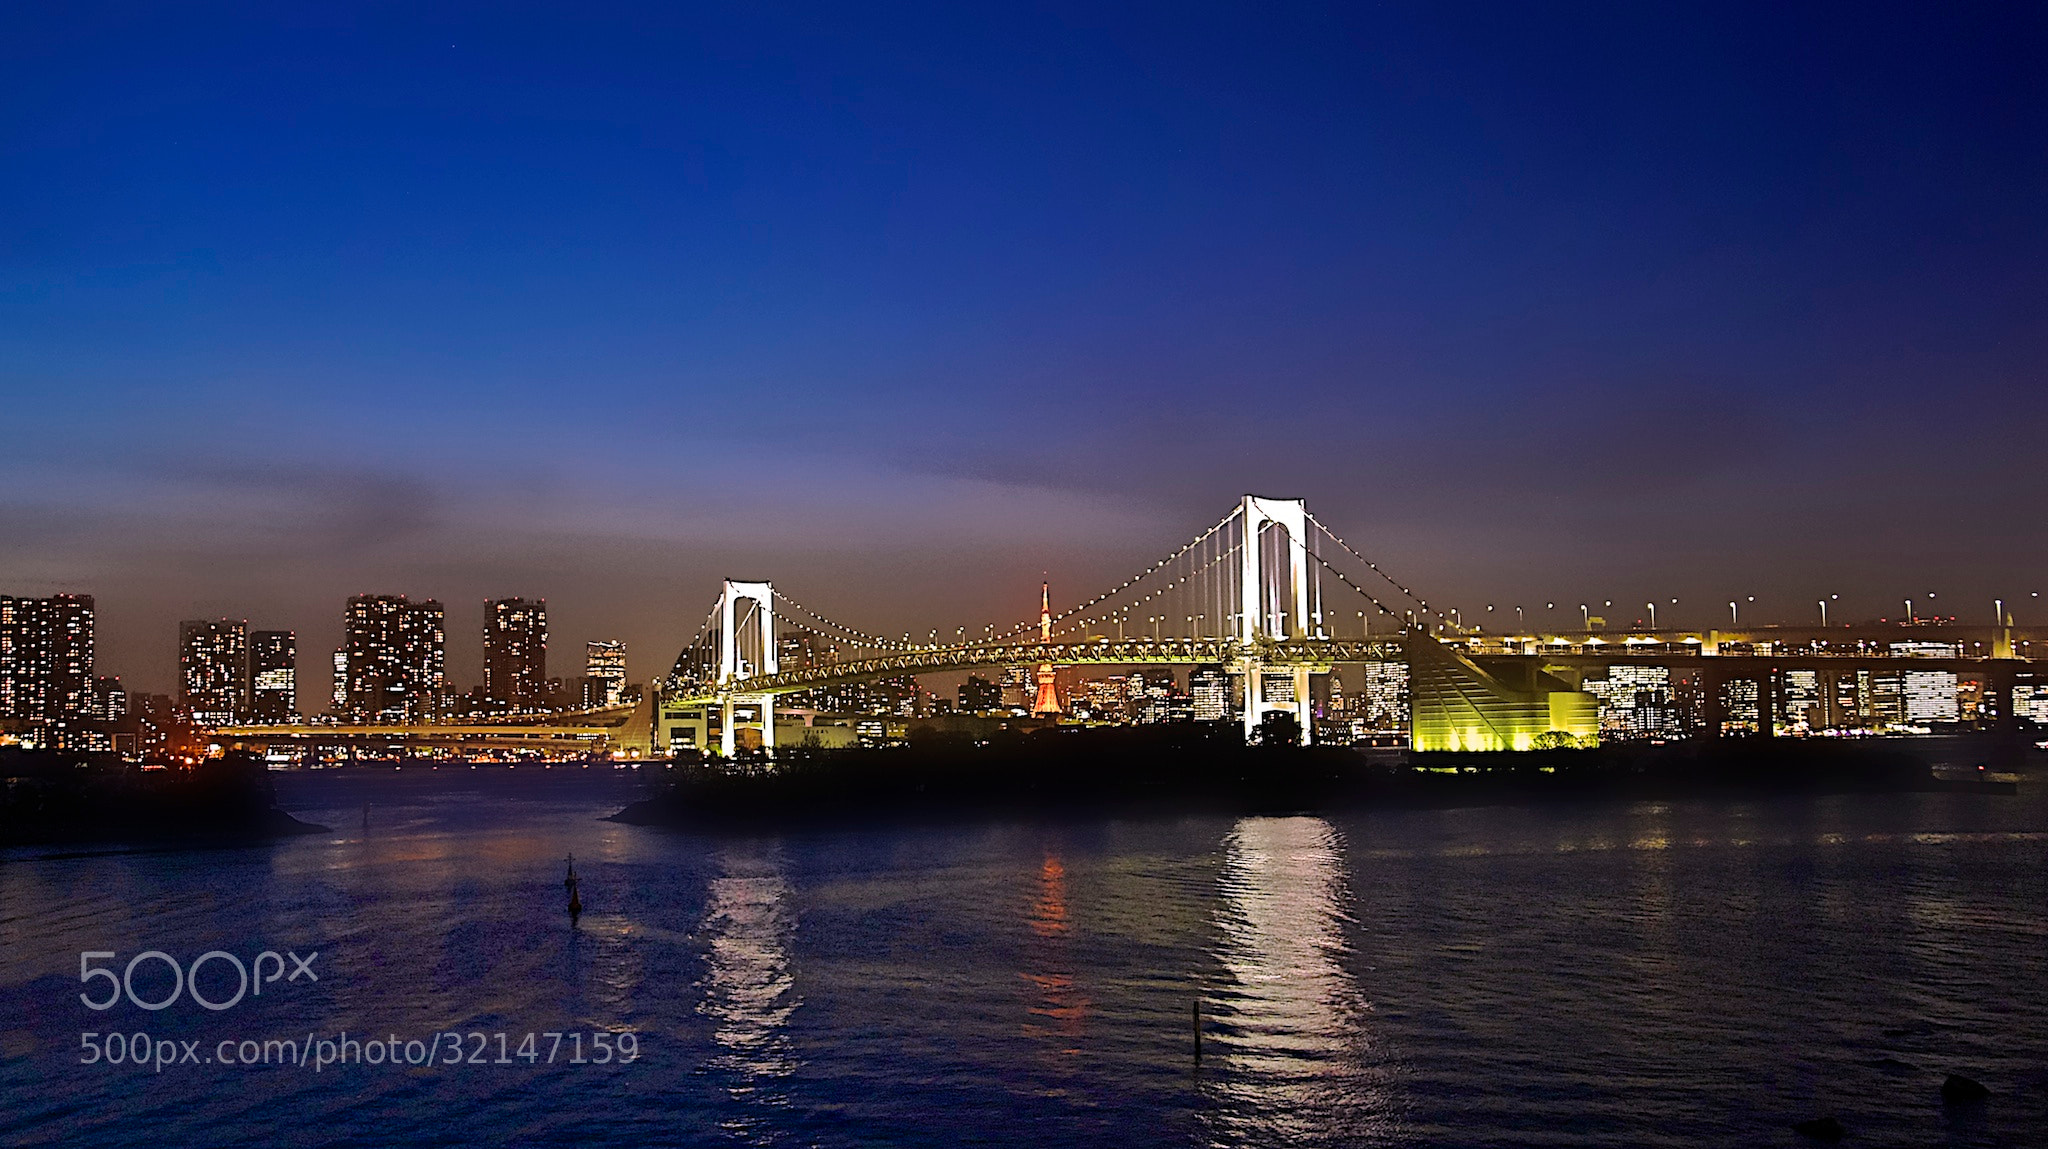 Photograph Tokyo By Night from Odaiba Island by Karim Kanoun on 500px